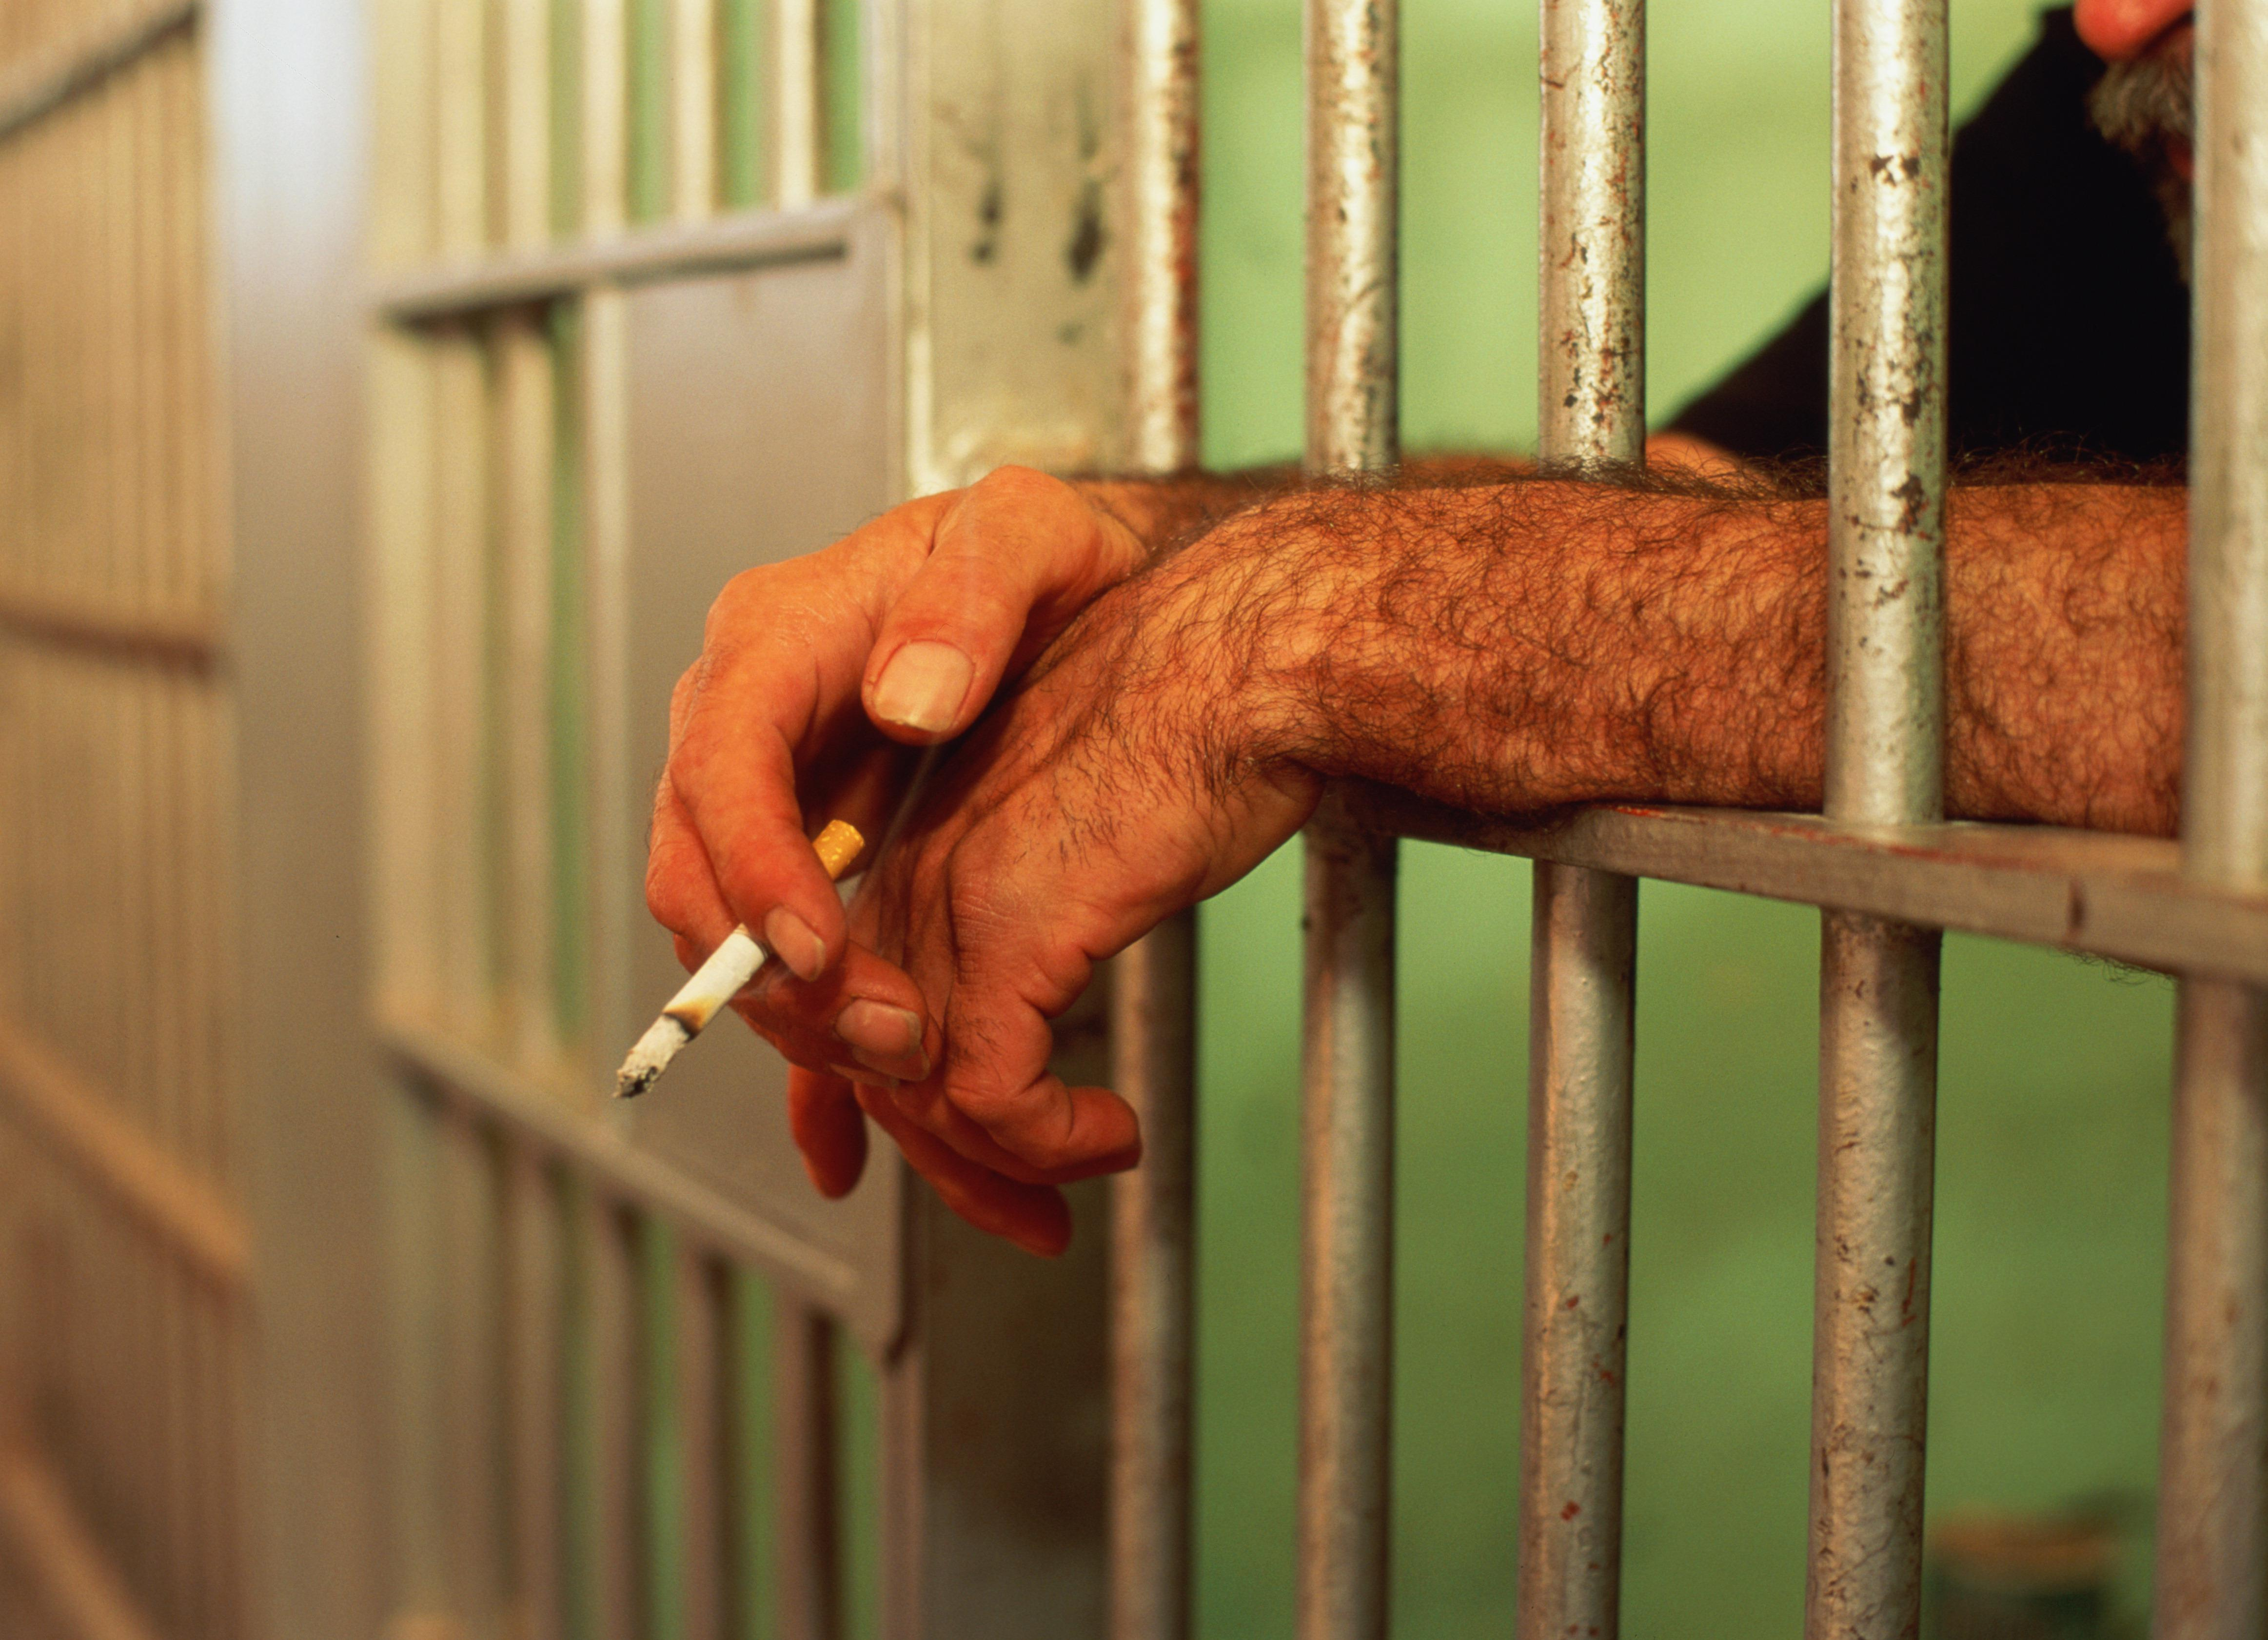 Man's hands poking through bars of jail cell, holding lit cigarette